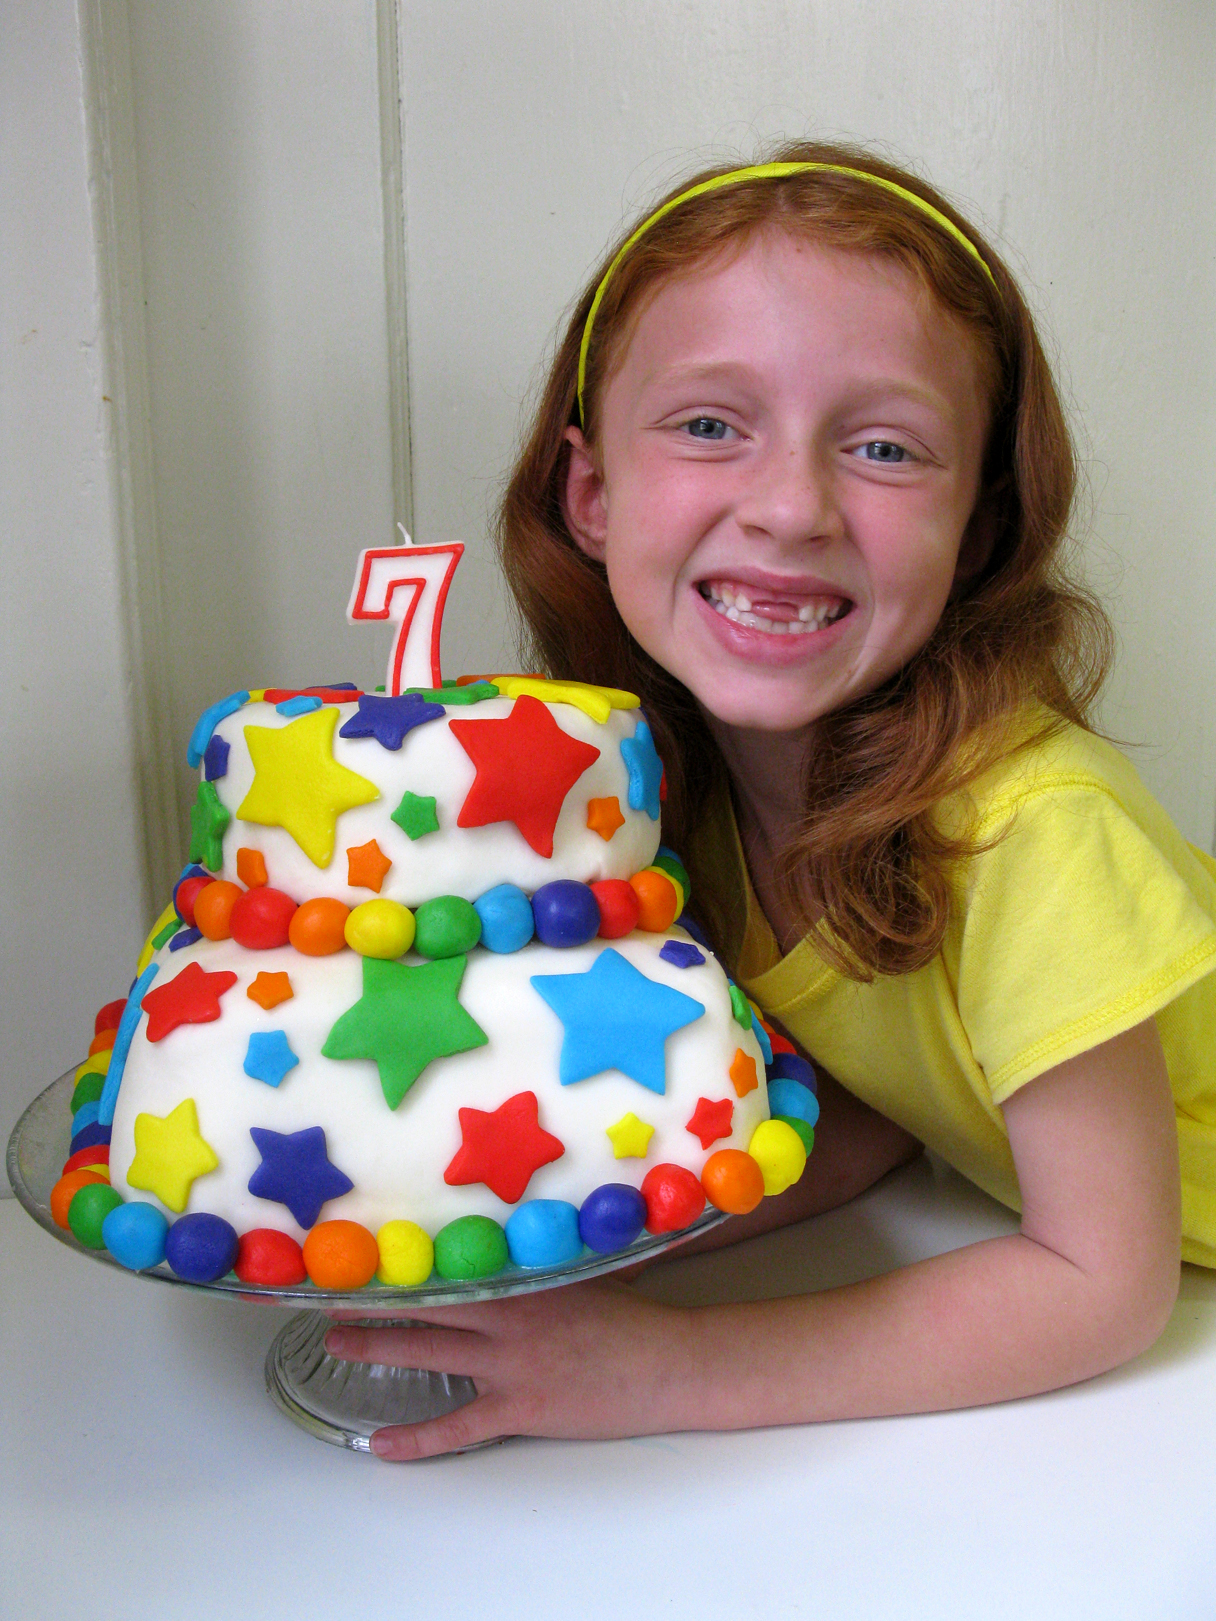 Cake Design For 7th Birthday Girl : The Beautiful Rainbow Fondant Cake and Rainbow Birthday ...